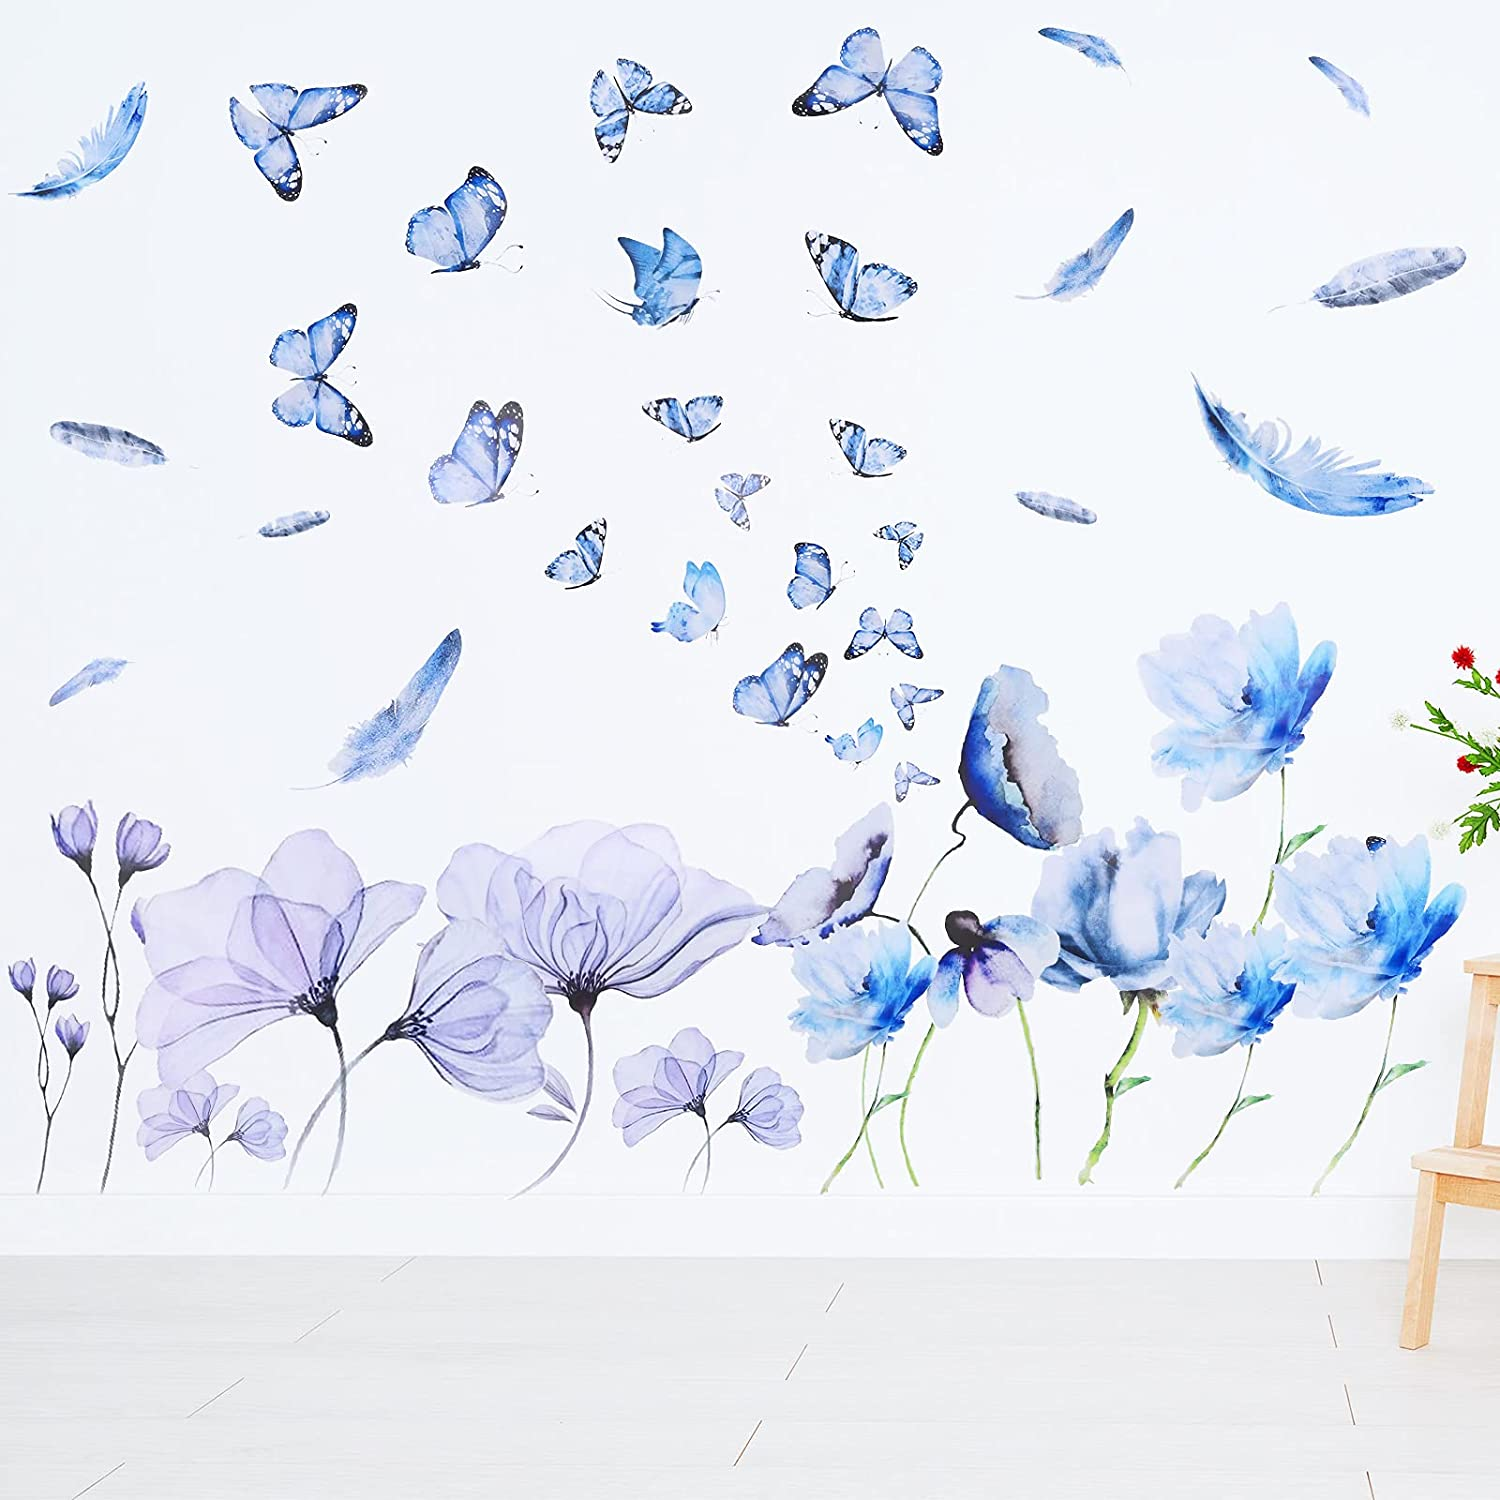 2 Sheets Blue Flower Wall Decals Garden Butterflies Wall Decals Removable Kids Room Wall Decoration DIY Butterfly Flower Art Decor Wall Stickers for Kids Room Nursery Classroom Bedroom Decoration